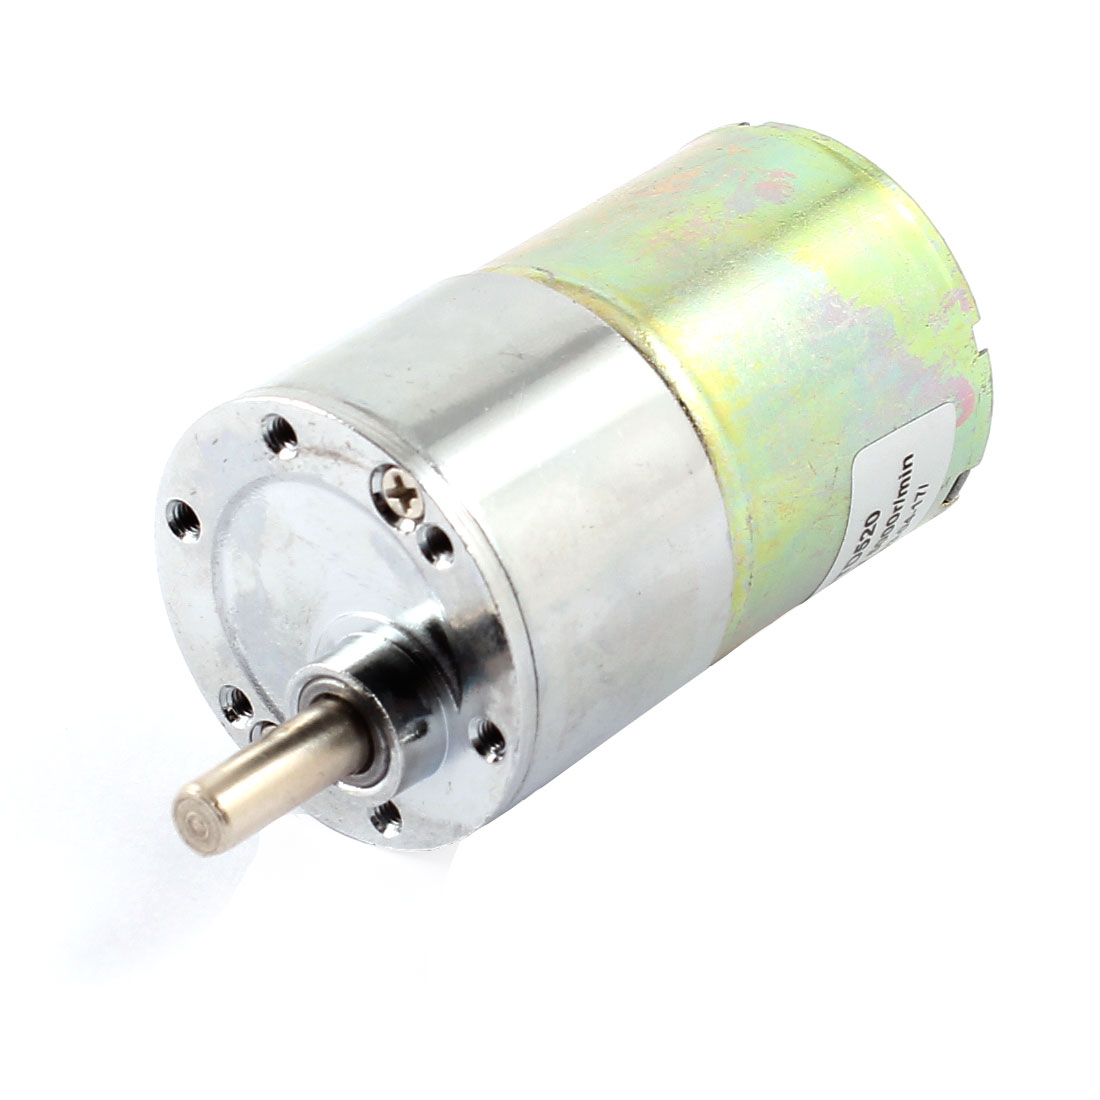 6mm Shaft 35m Body Diameter 2 Connector Cylinder Shape Gear Box Motor DC12V 5000R/MIN